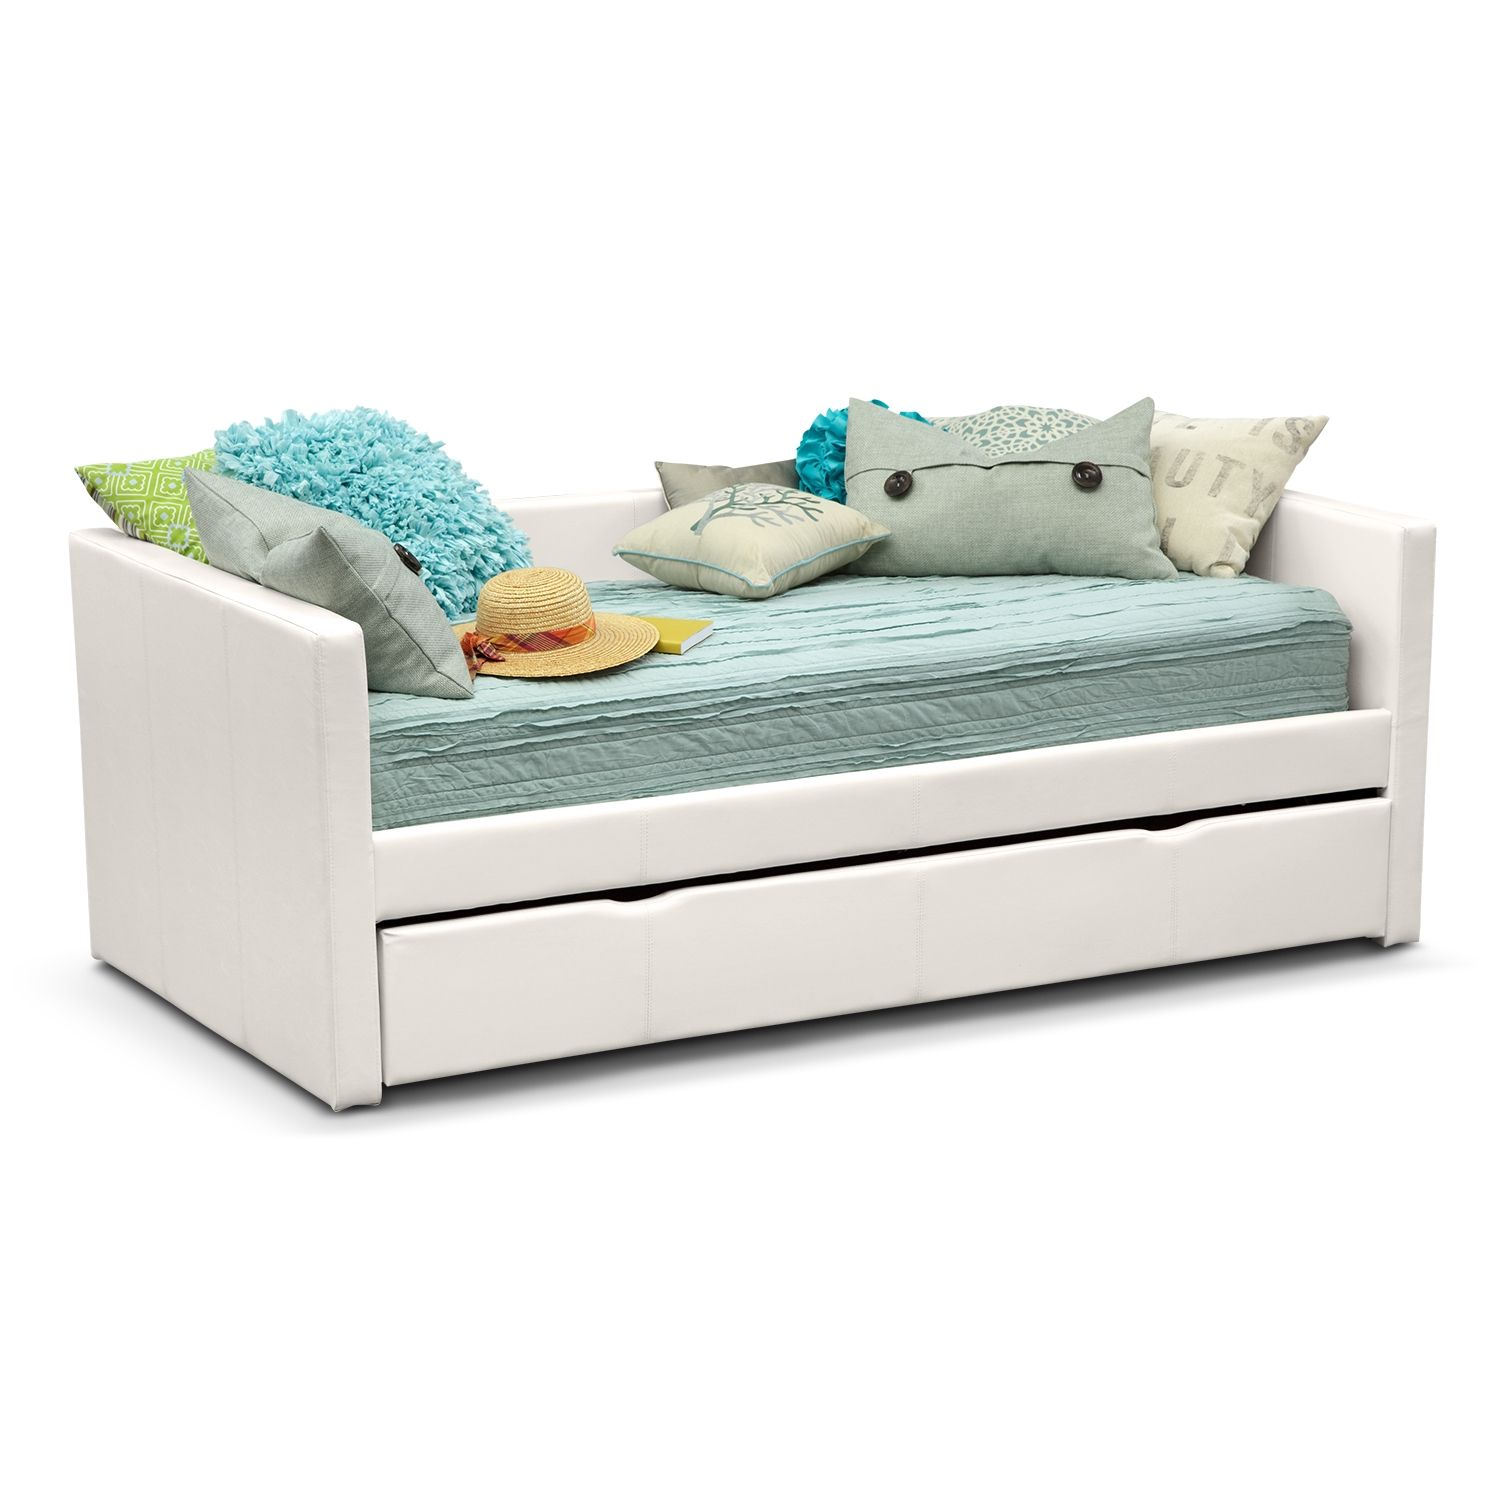 Darby Kids Furniture Twin Daybed With Trundle Gopi House Ideas Pinterest